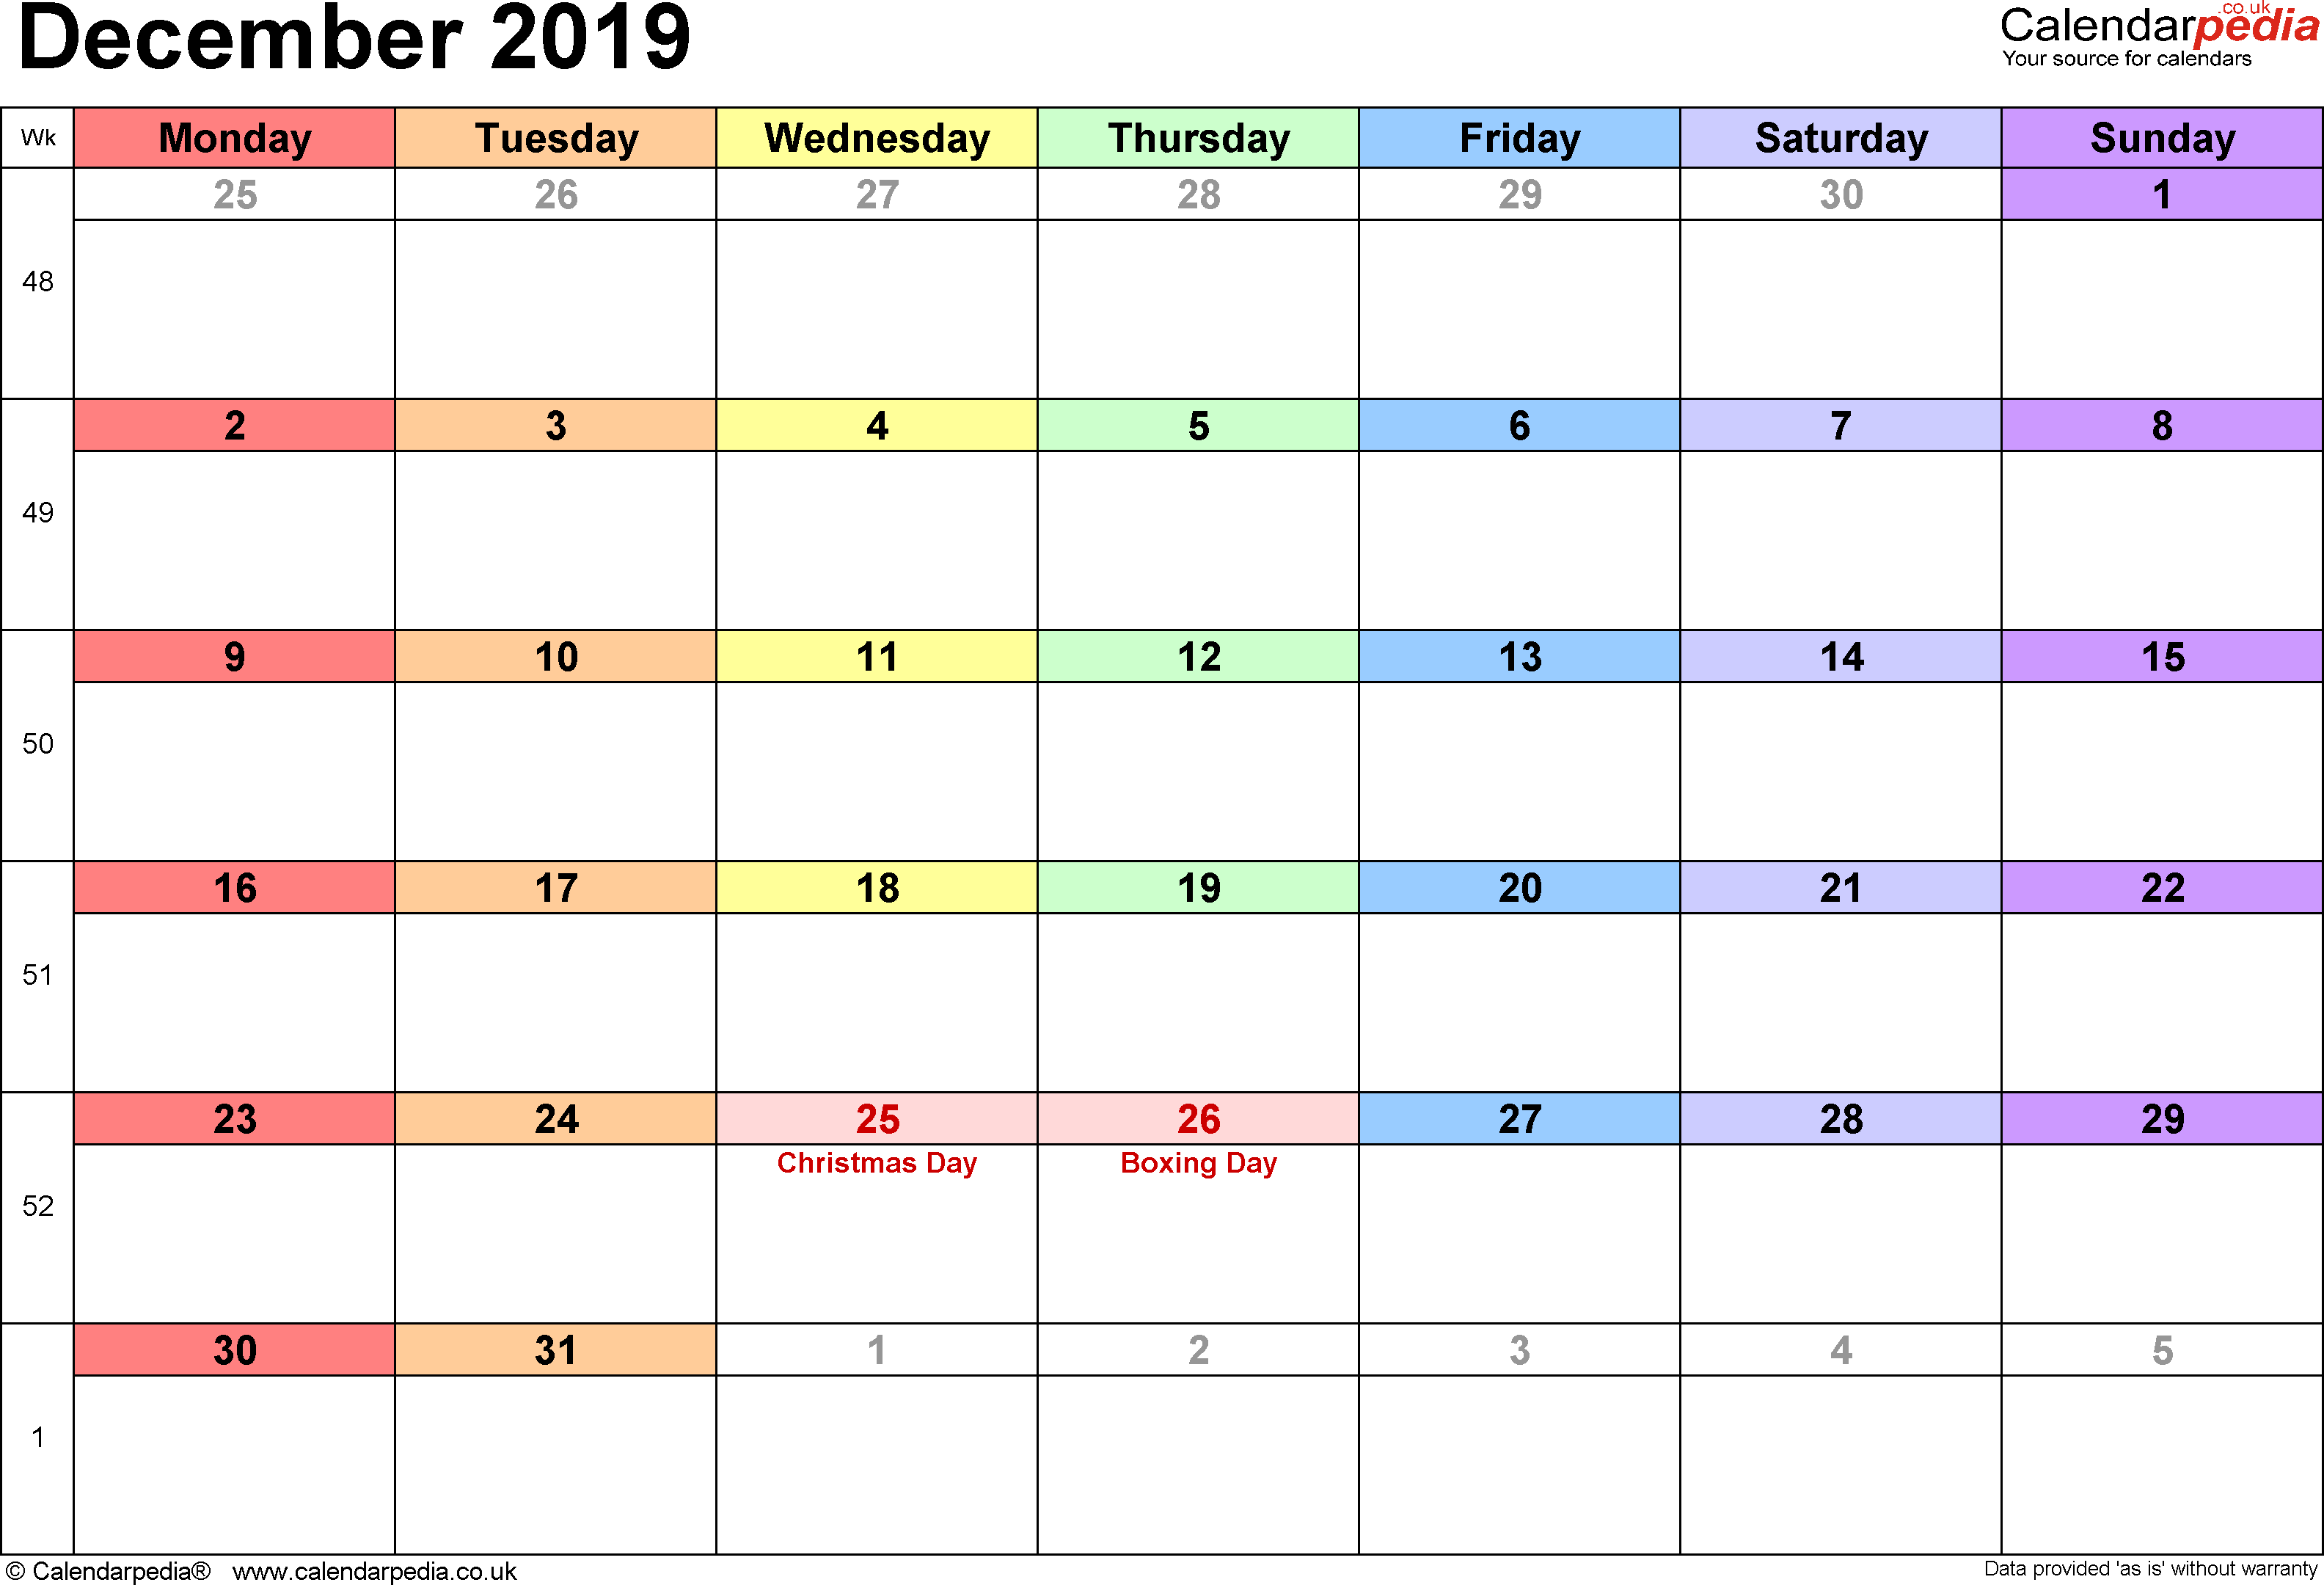 Calendar December 2019, landscape orientation, 1 page, with UK bank holidays and week numbers